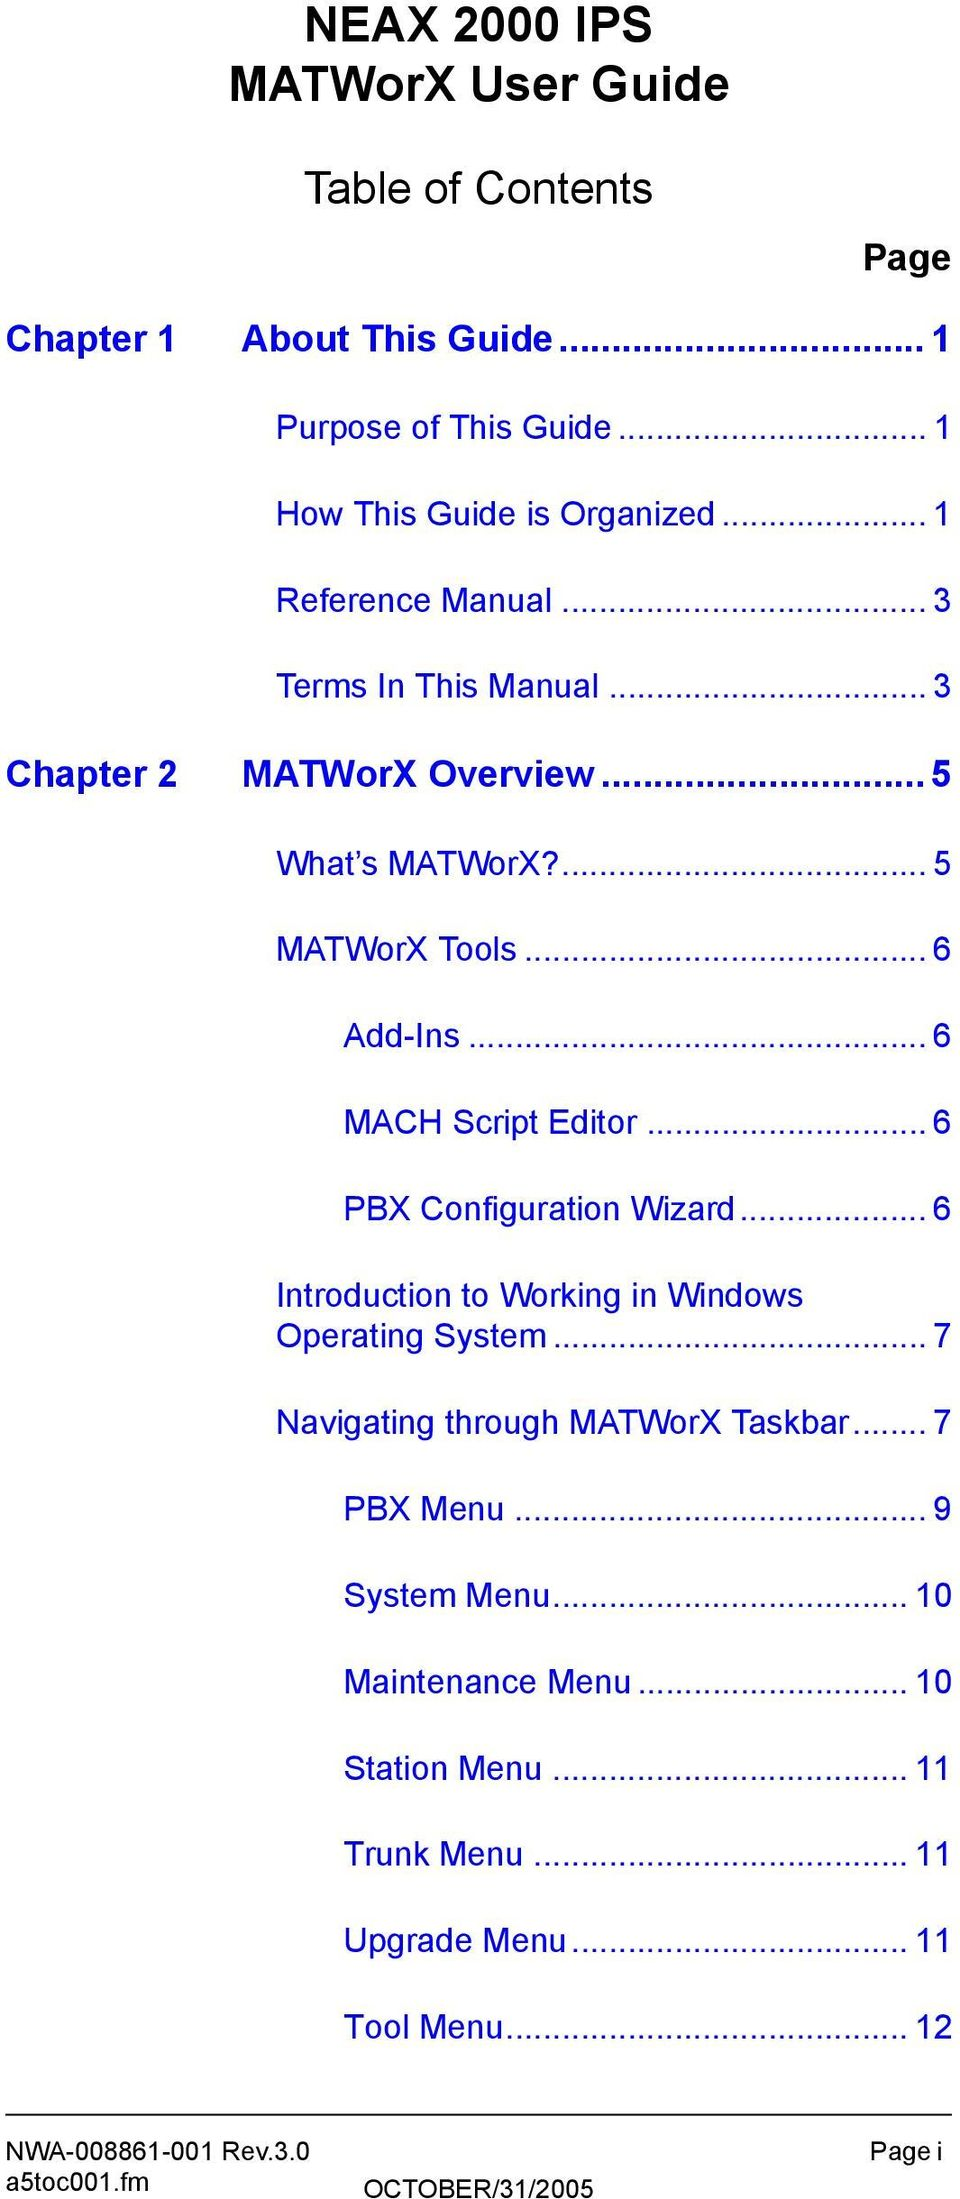 .. 6 MACH Script Editor... 6 PBX Configuration Wizard... 6 Introduction to Working in Windows Operating System.